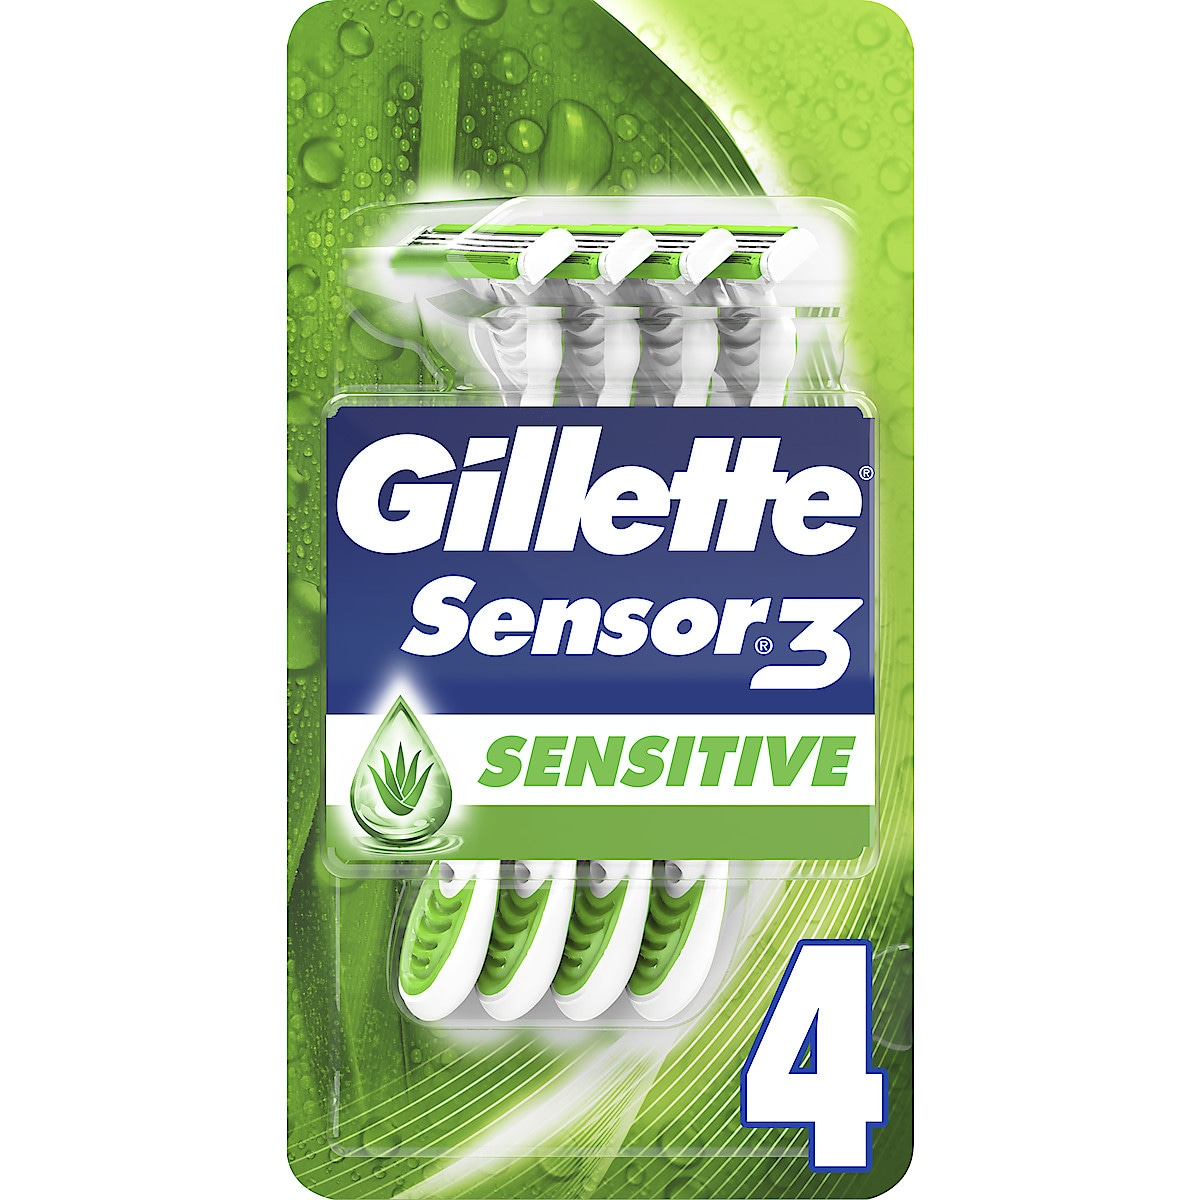 Gillette Sensor 3 Sensitive barberhøvel, 4 stk.